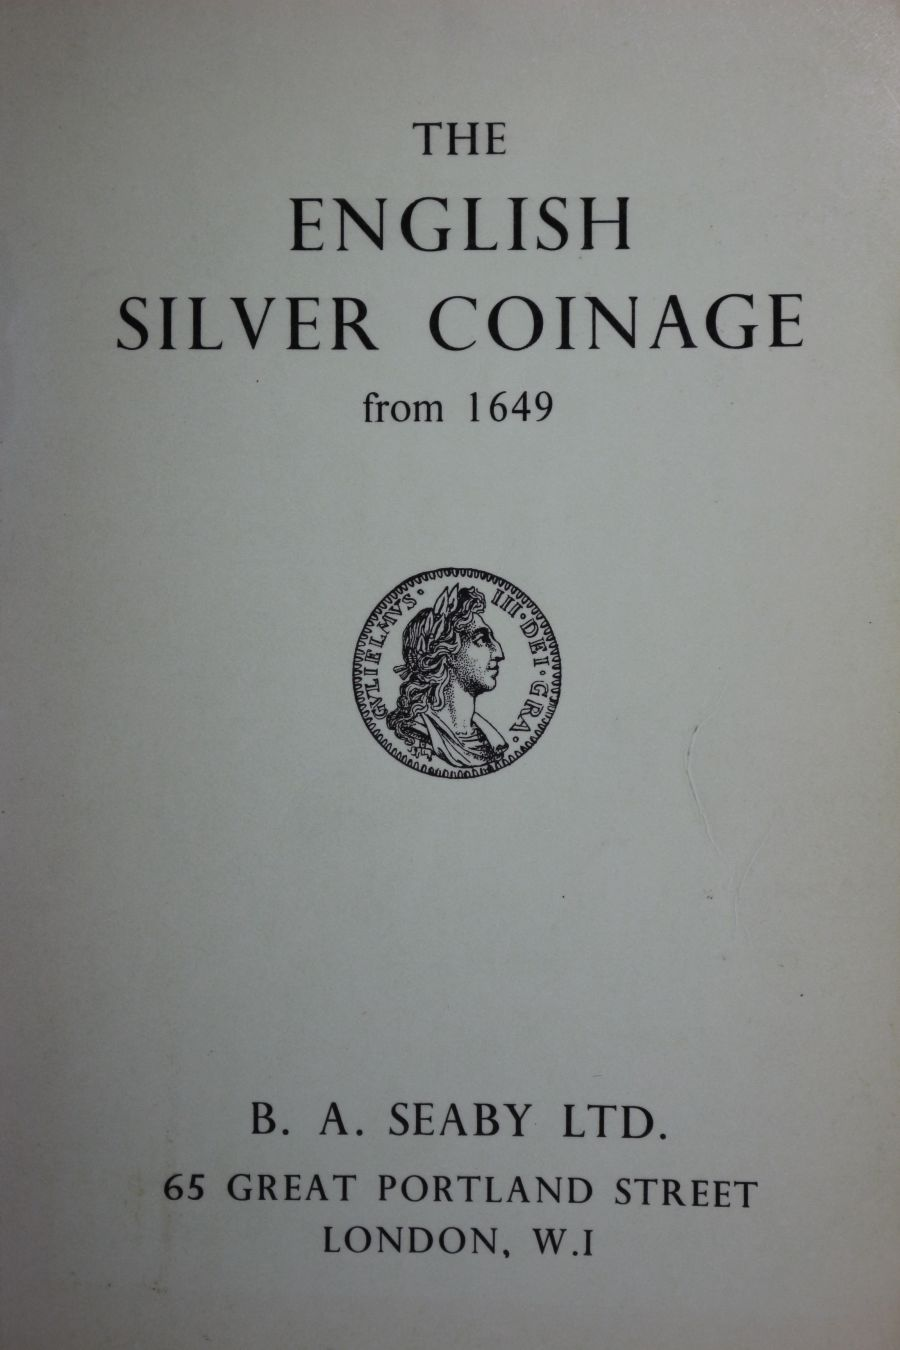 The English Silver Coinage from 1649, Herbert alan Seaby, Second revised edition